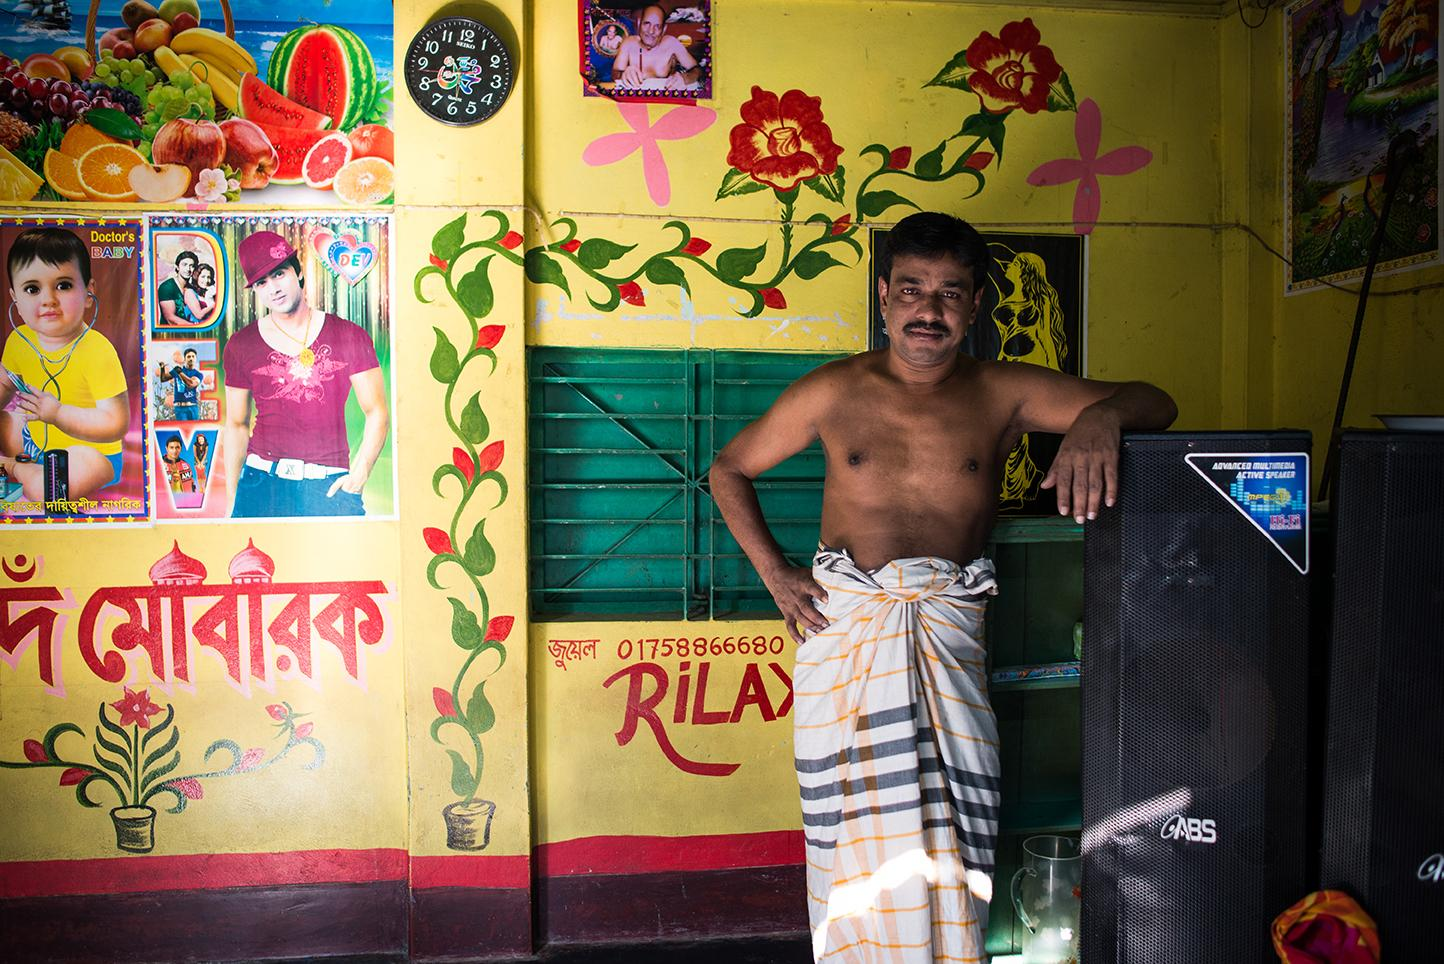 Dulal, 40, from Pabna village in Bangladesh proudly rests on the speakers at his nightclub, where he acts as club DJ. He has been running the club for six months. Men come to the club and drink alcohol and buy private dances from the sex workers. Daulatadia Brothel in Daulatadia, Rajbari, Bangladesh. Daulatadia is considered one of the largest brothels in the world and serves roughly 2500-3000 men daily. Bangladesh is the only Muslim country in the world where prostitution is legal. Though legally prostitutes must be at least 18 years of age many are tricked into the profession at a very young age.